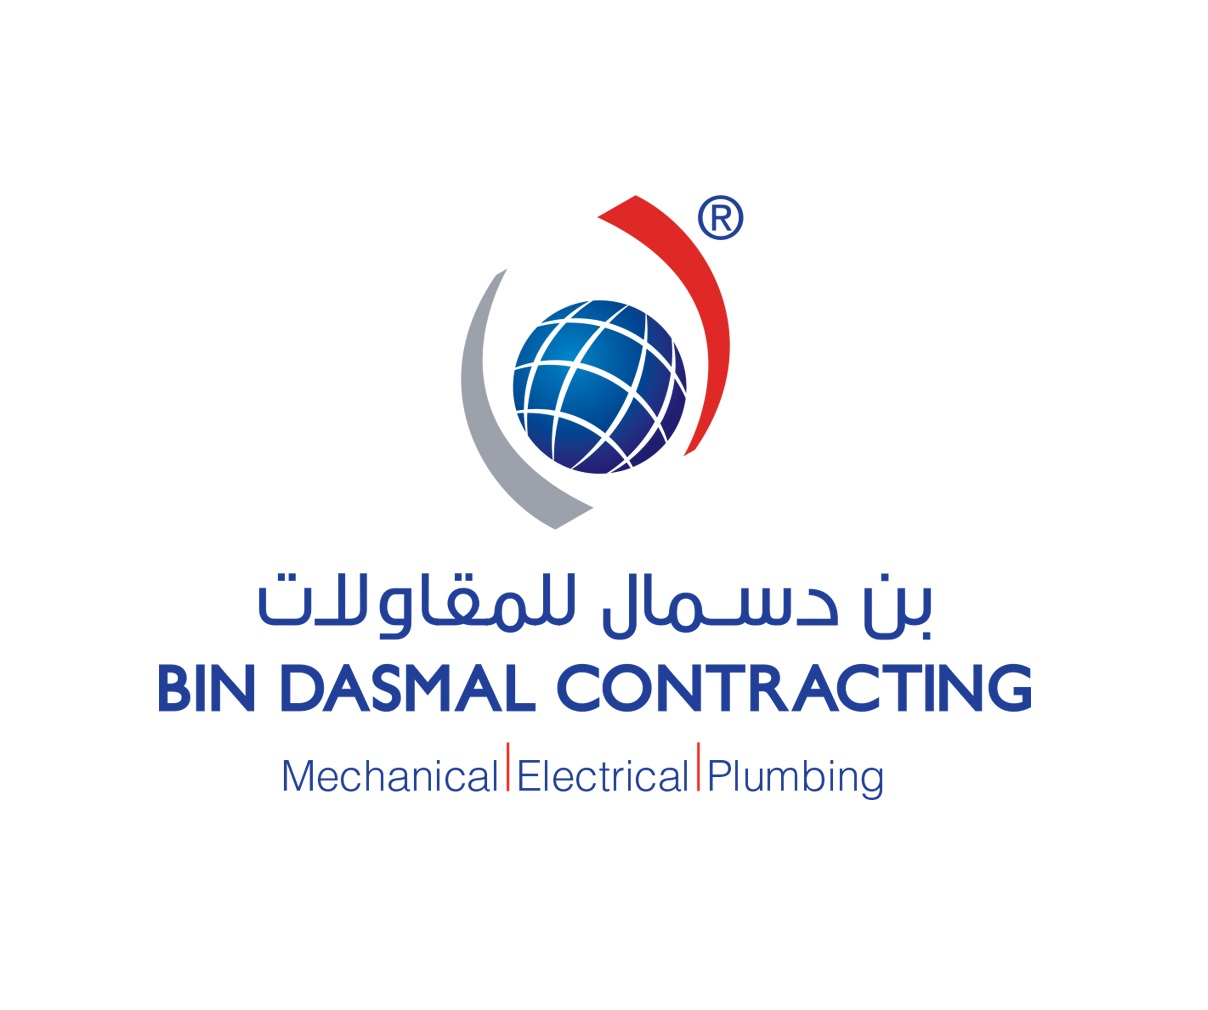 Bin Dasmal Contracting